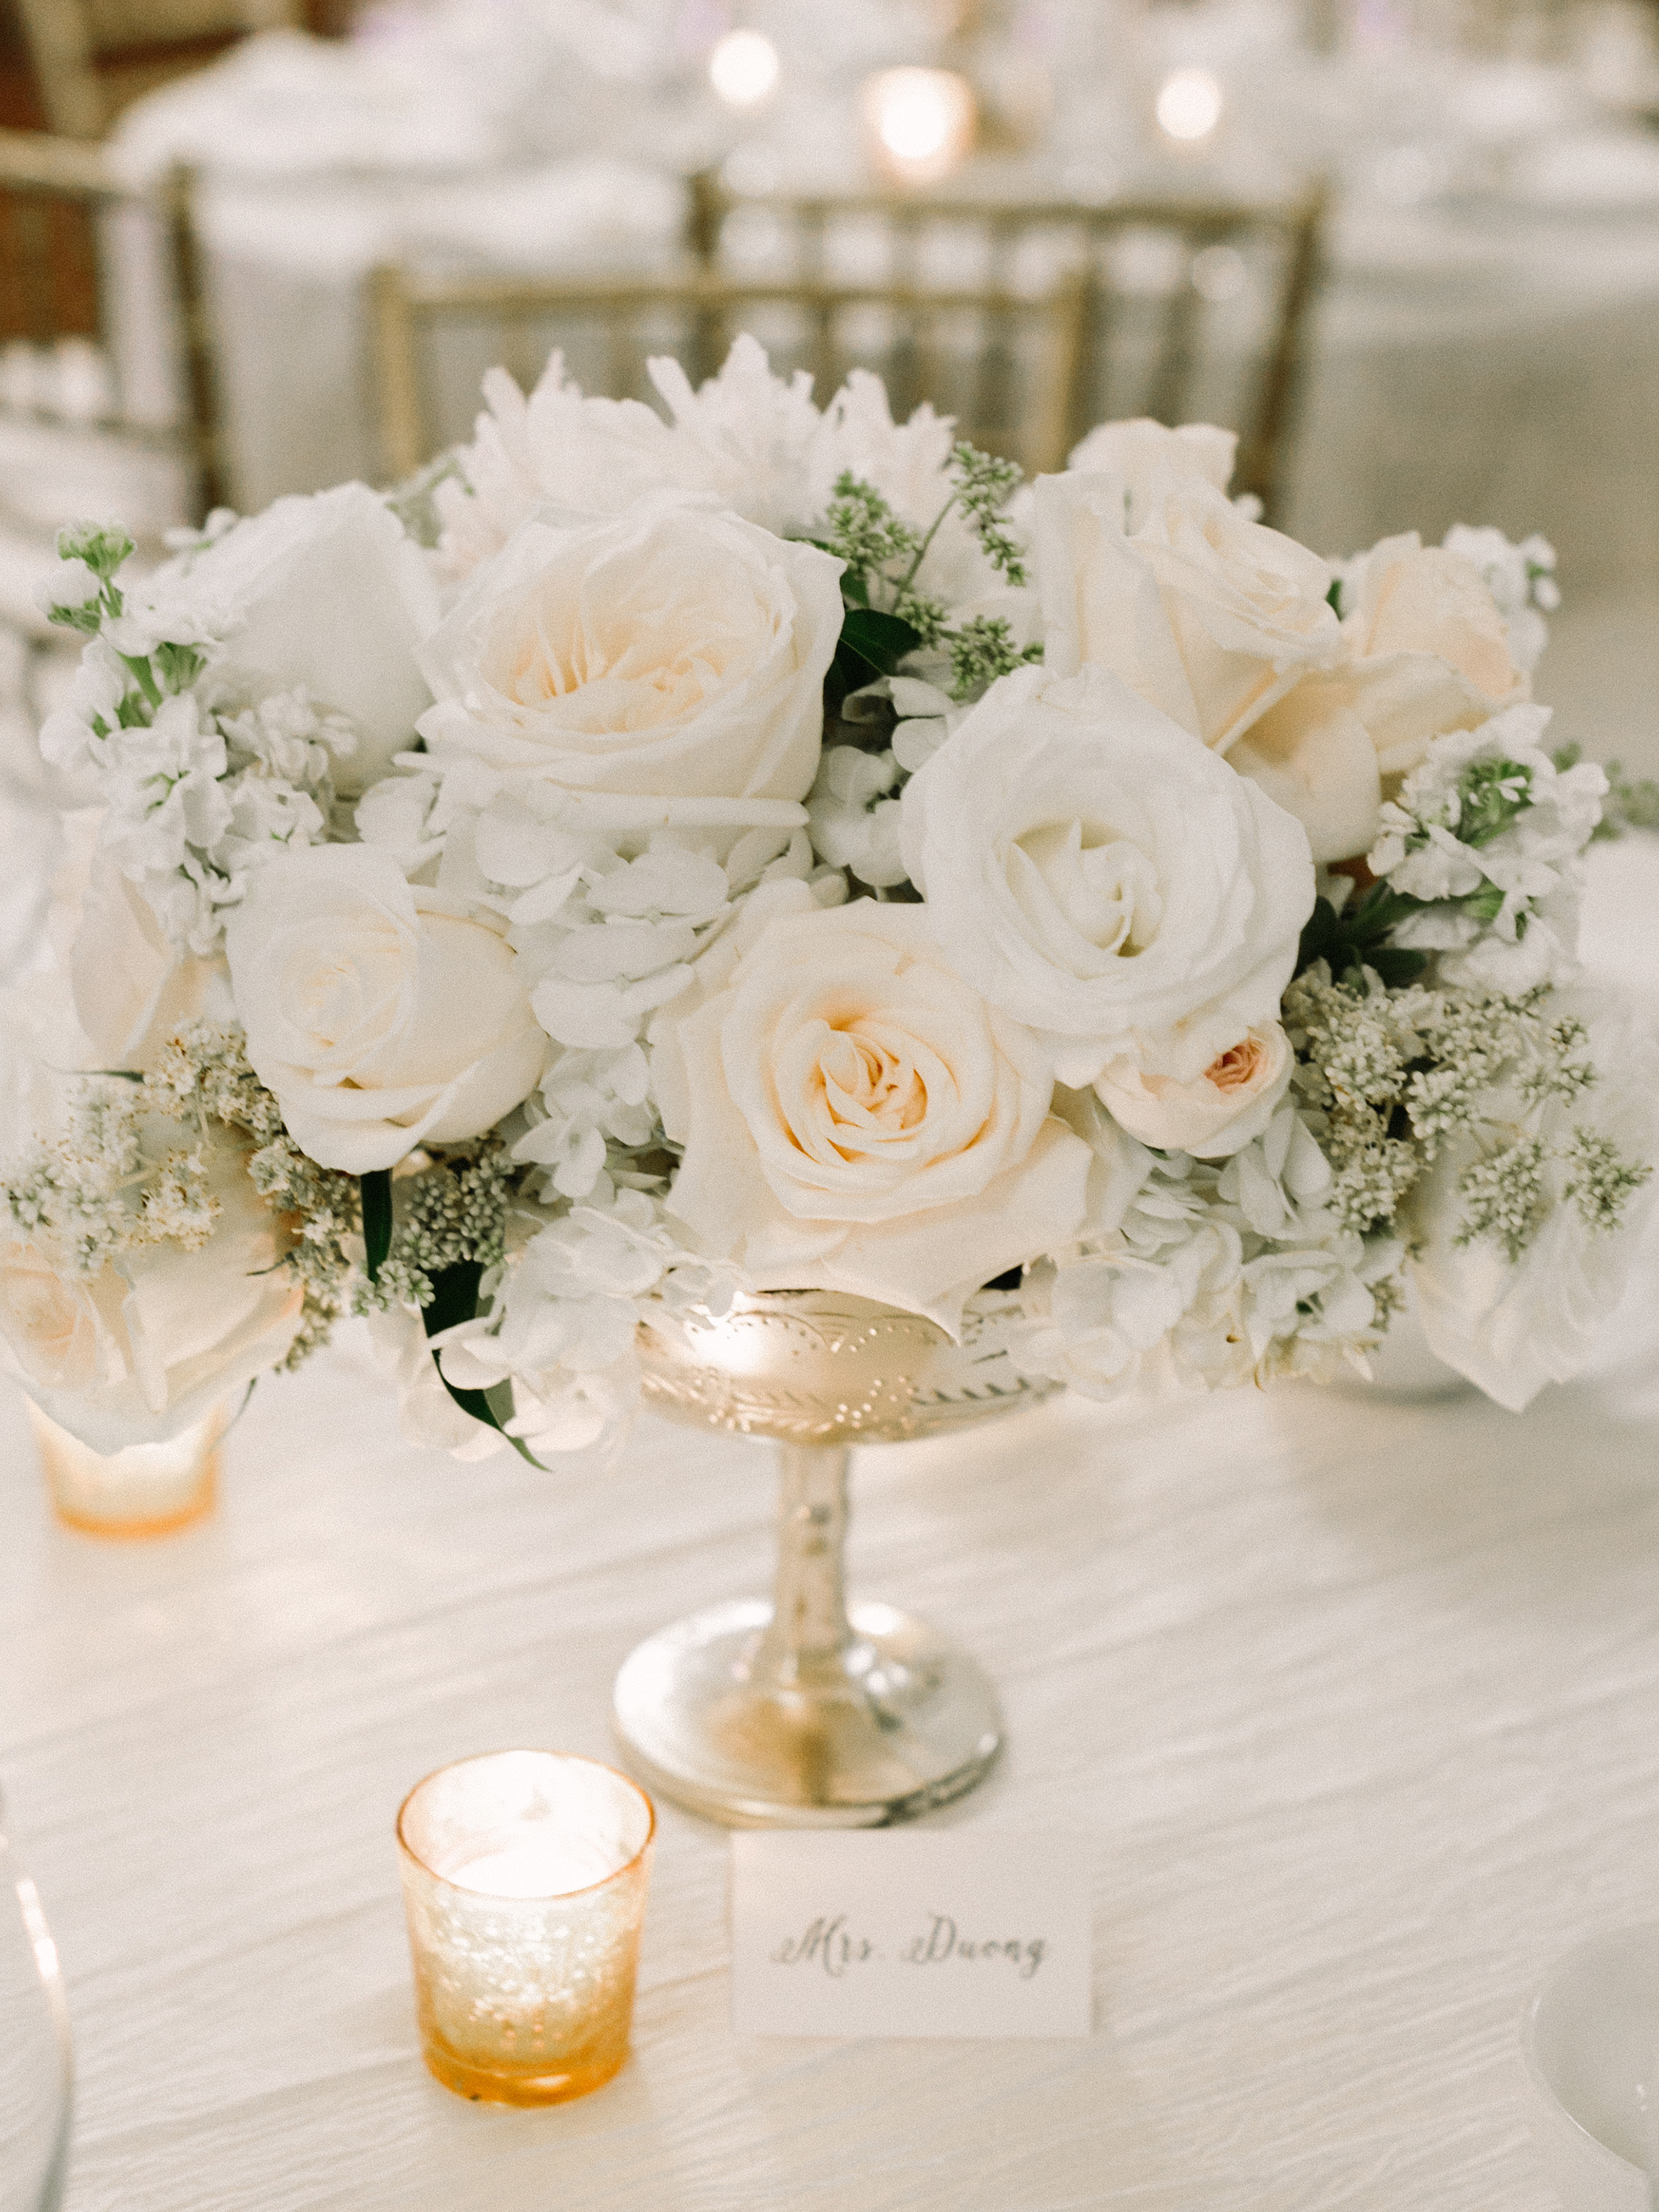 classic centerpieces beatrice howell